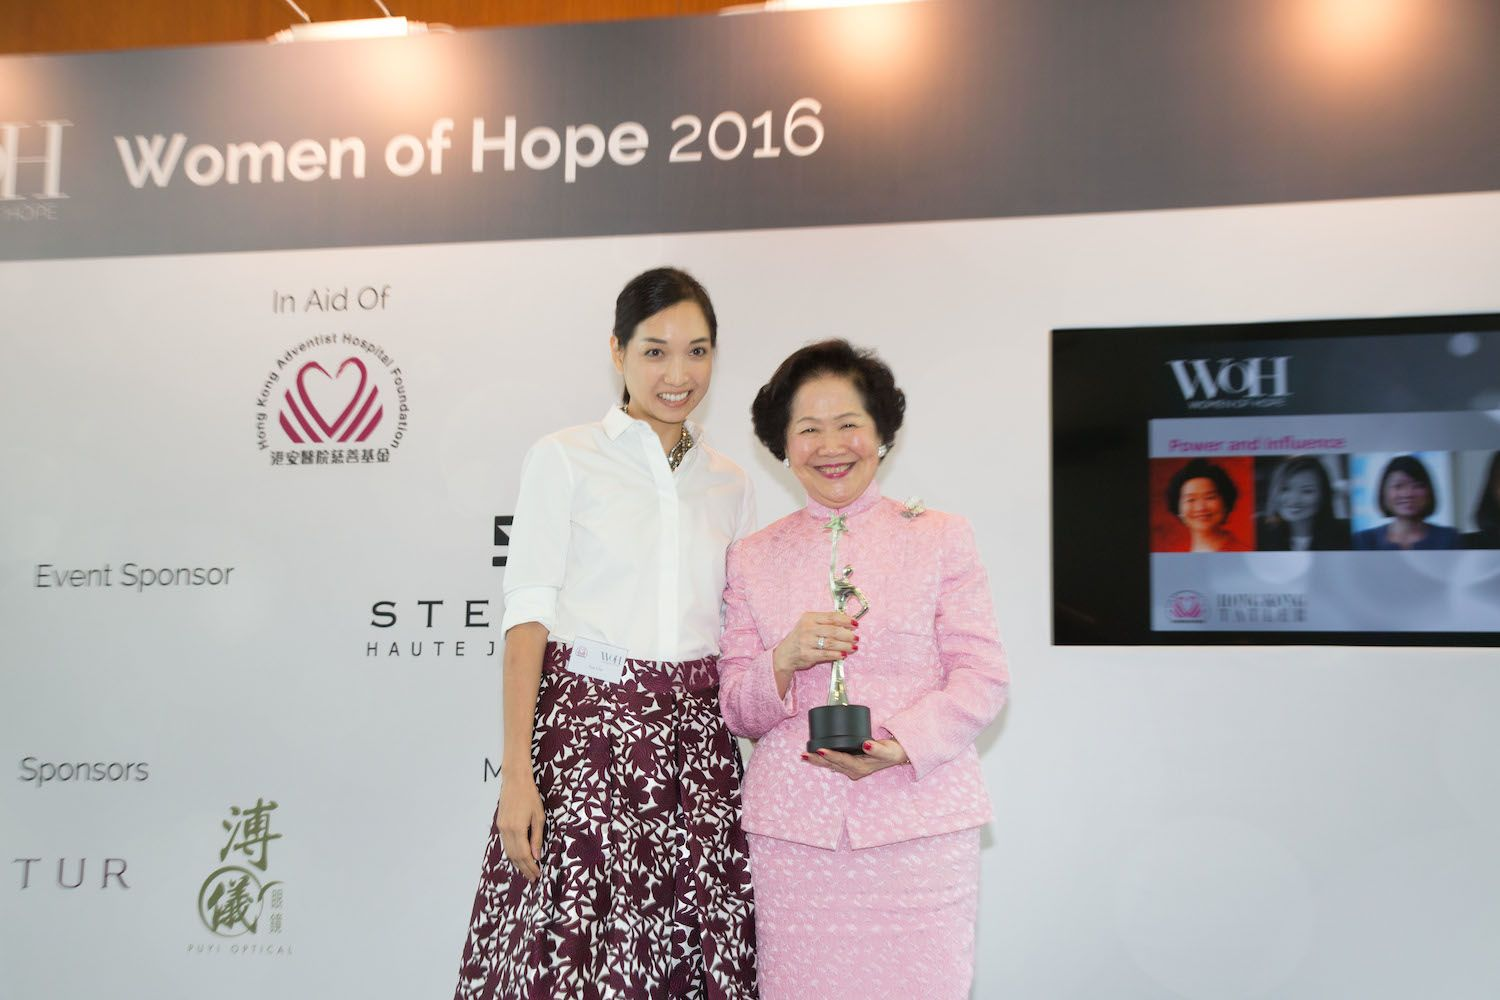 8 Women To Know From The 2016 Women of Hope Awards